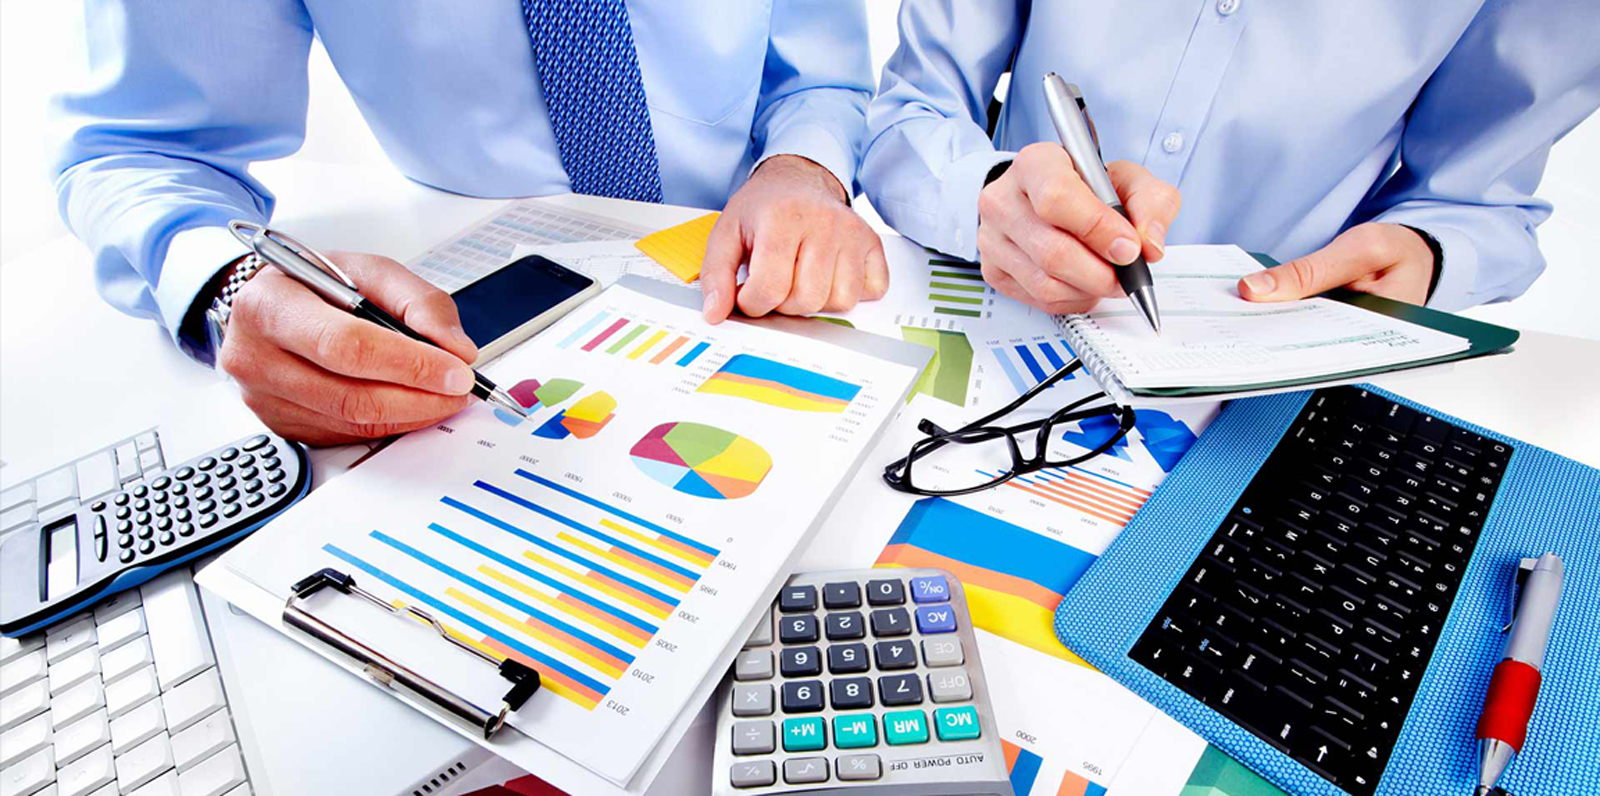 5 Reasons Why Your Business Needs to Hire an Accountant